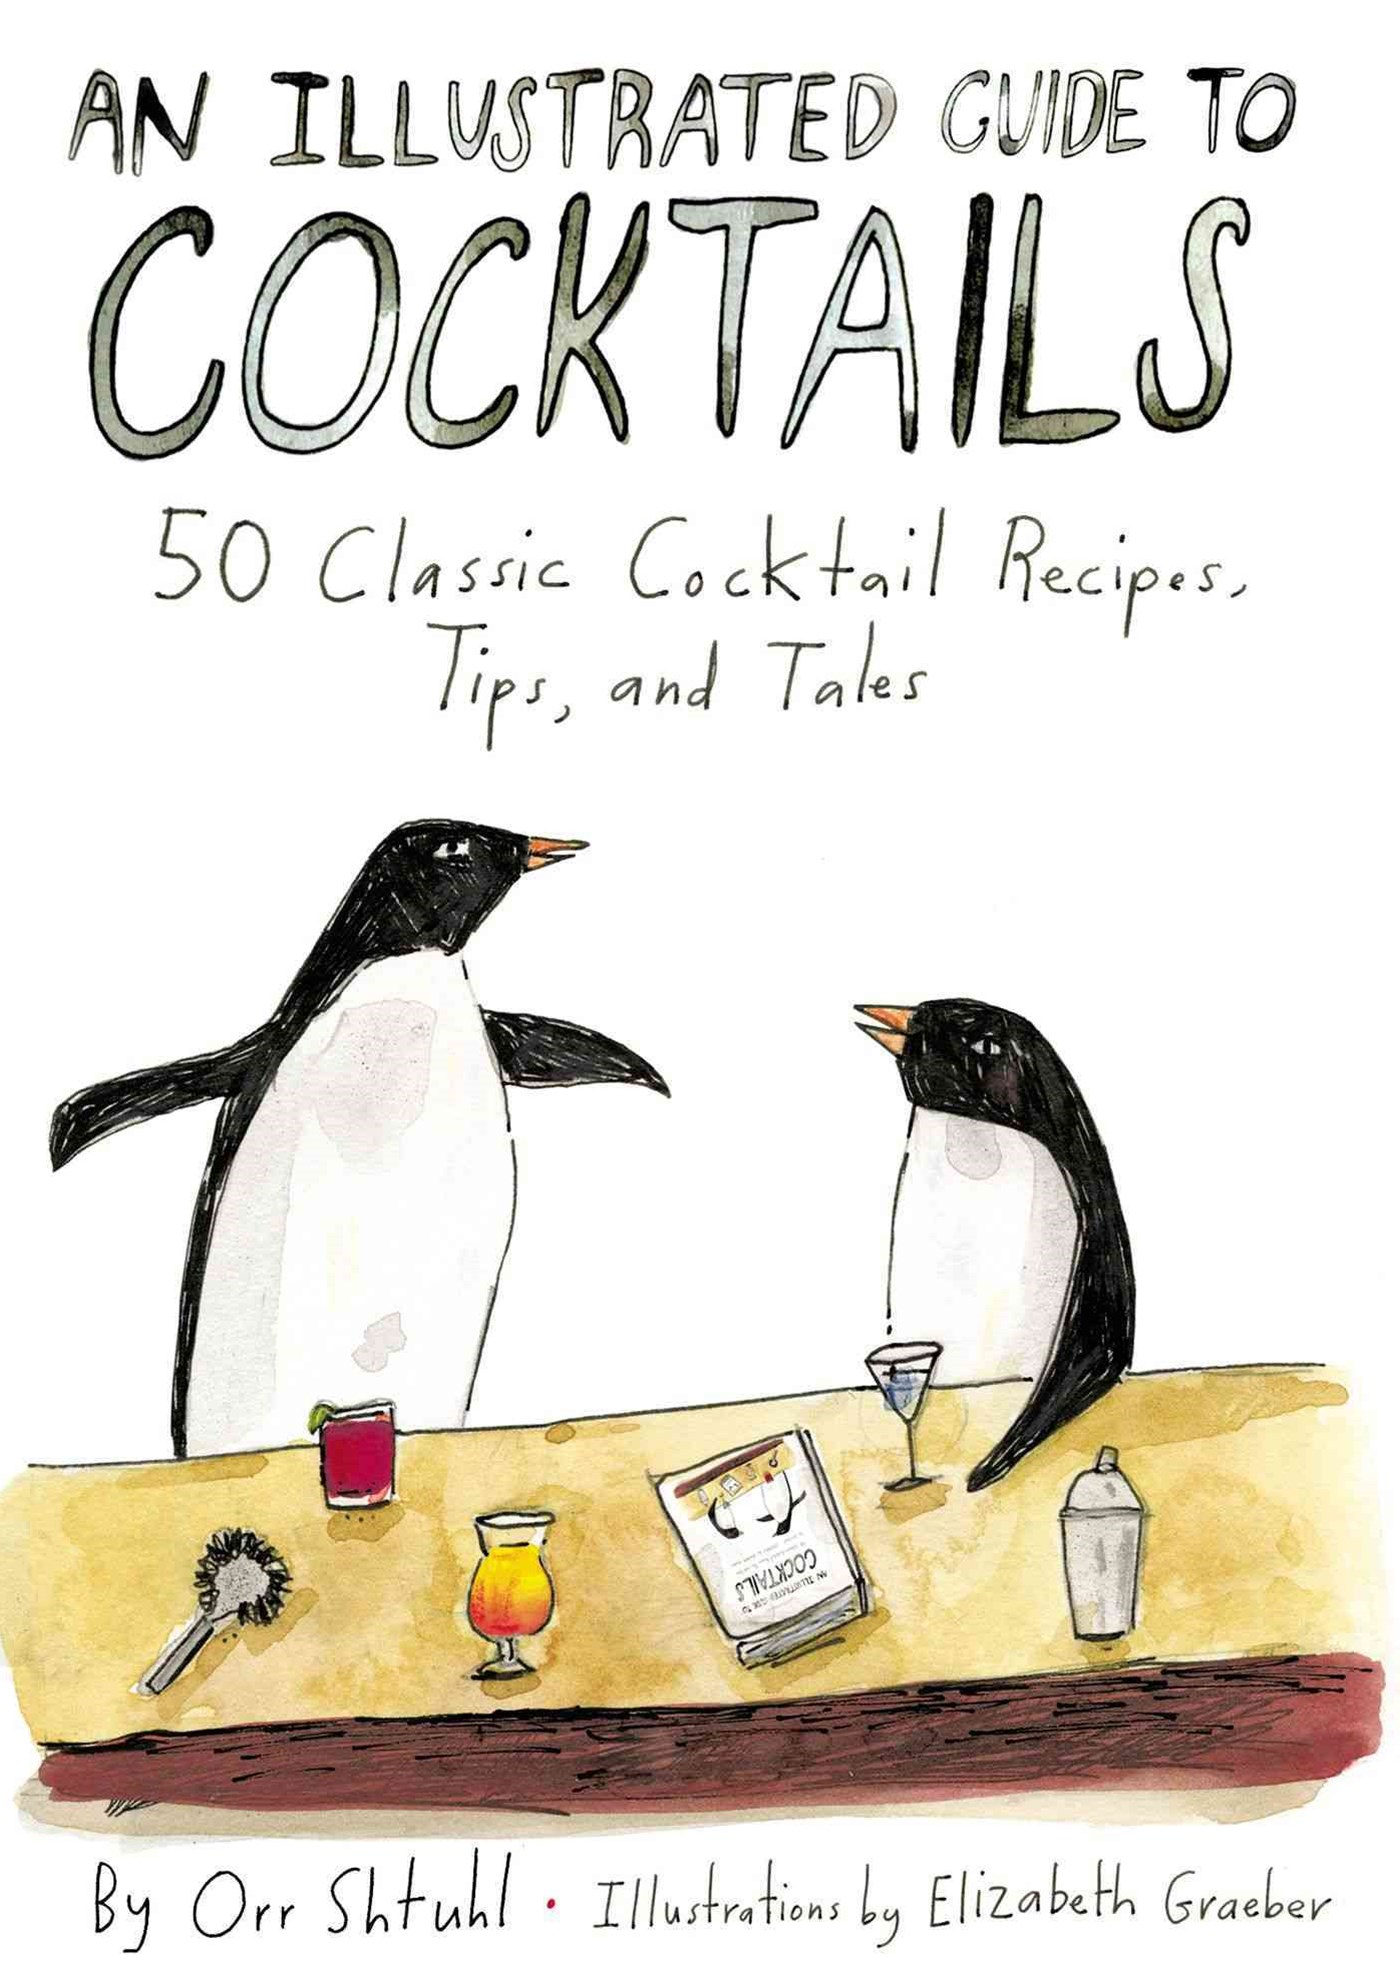 Illustrated Guide to Cocktails: 50 Classic Cocktail Recipes,Tips, and Tales, An